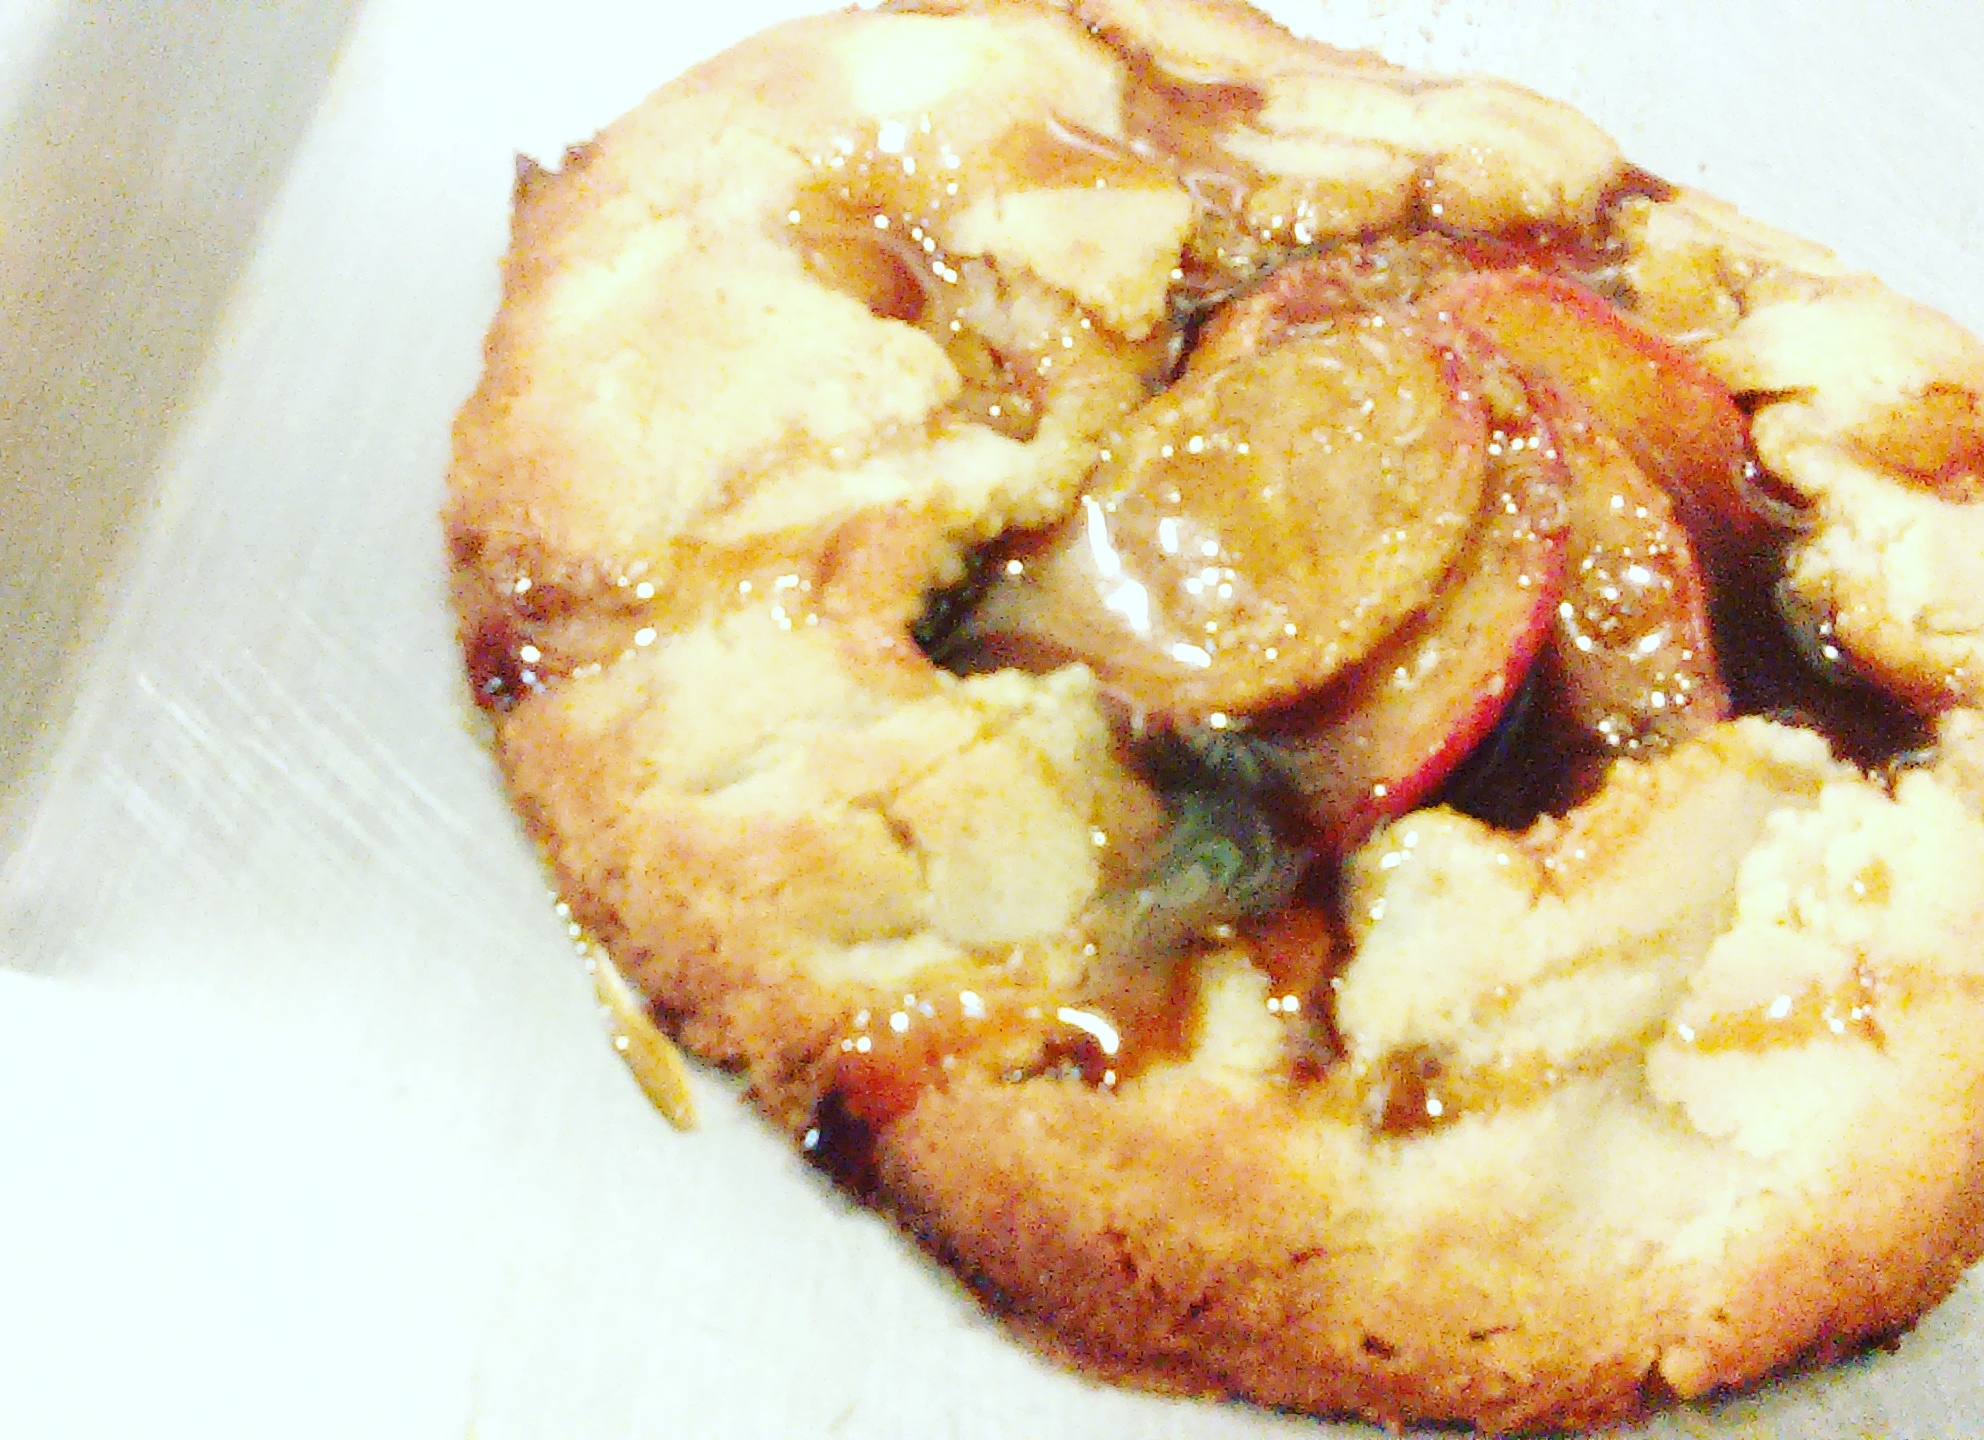 Caramel Apple Galette – P3: Polifroni Pies & Pizzas